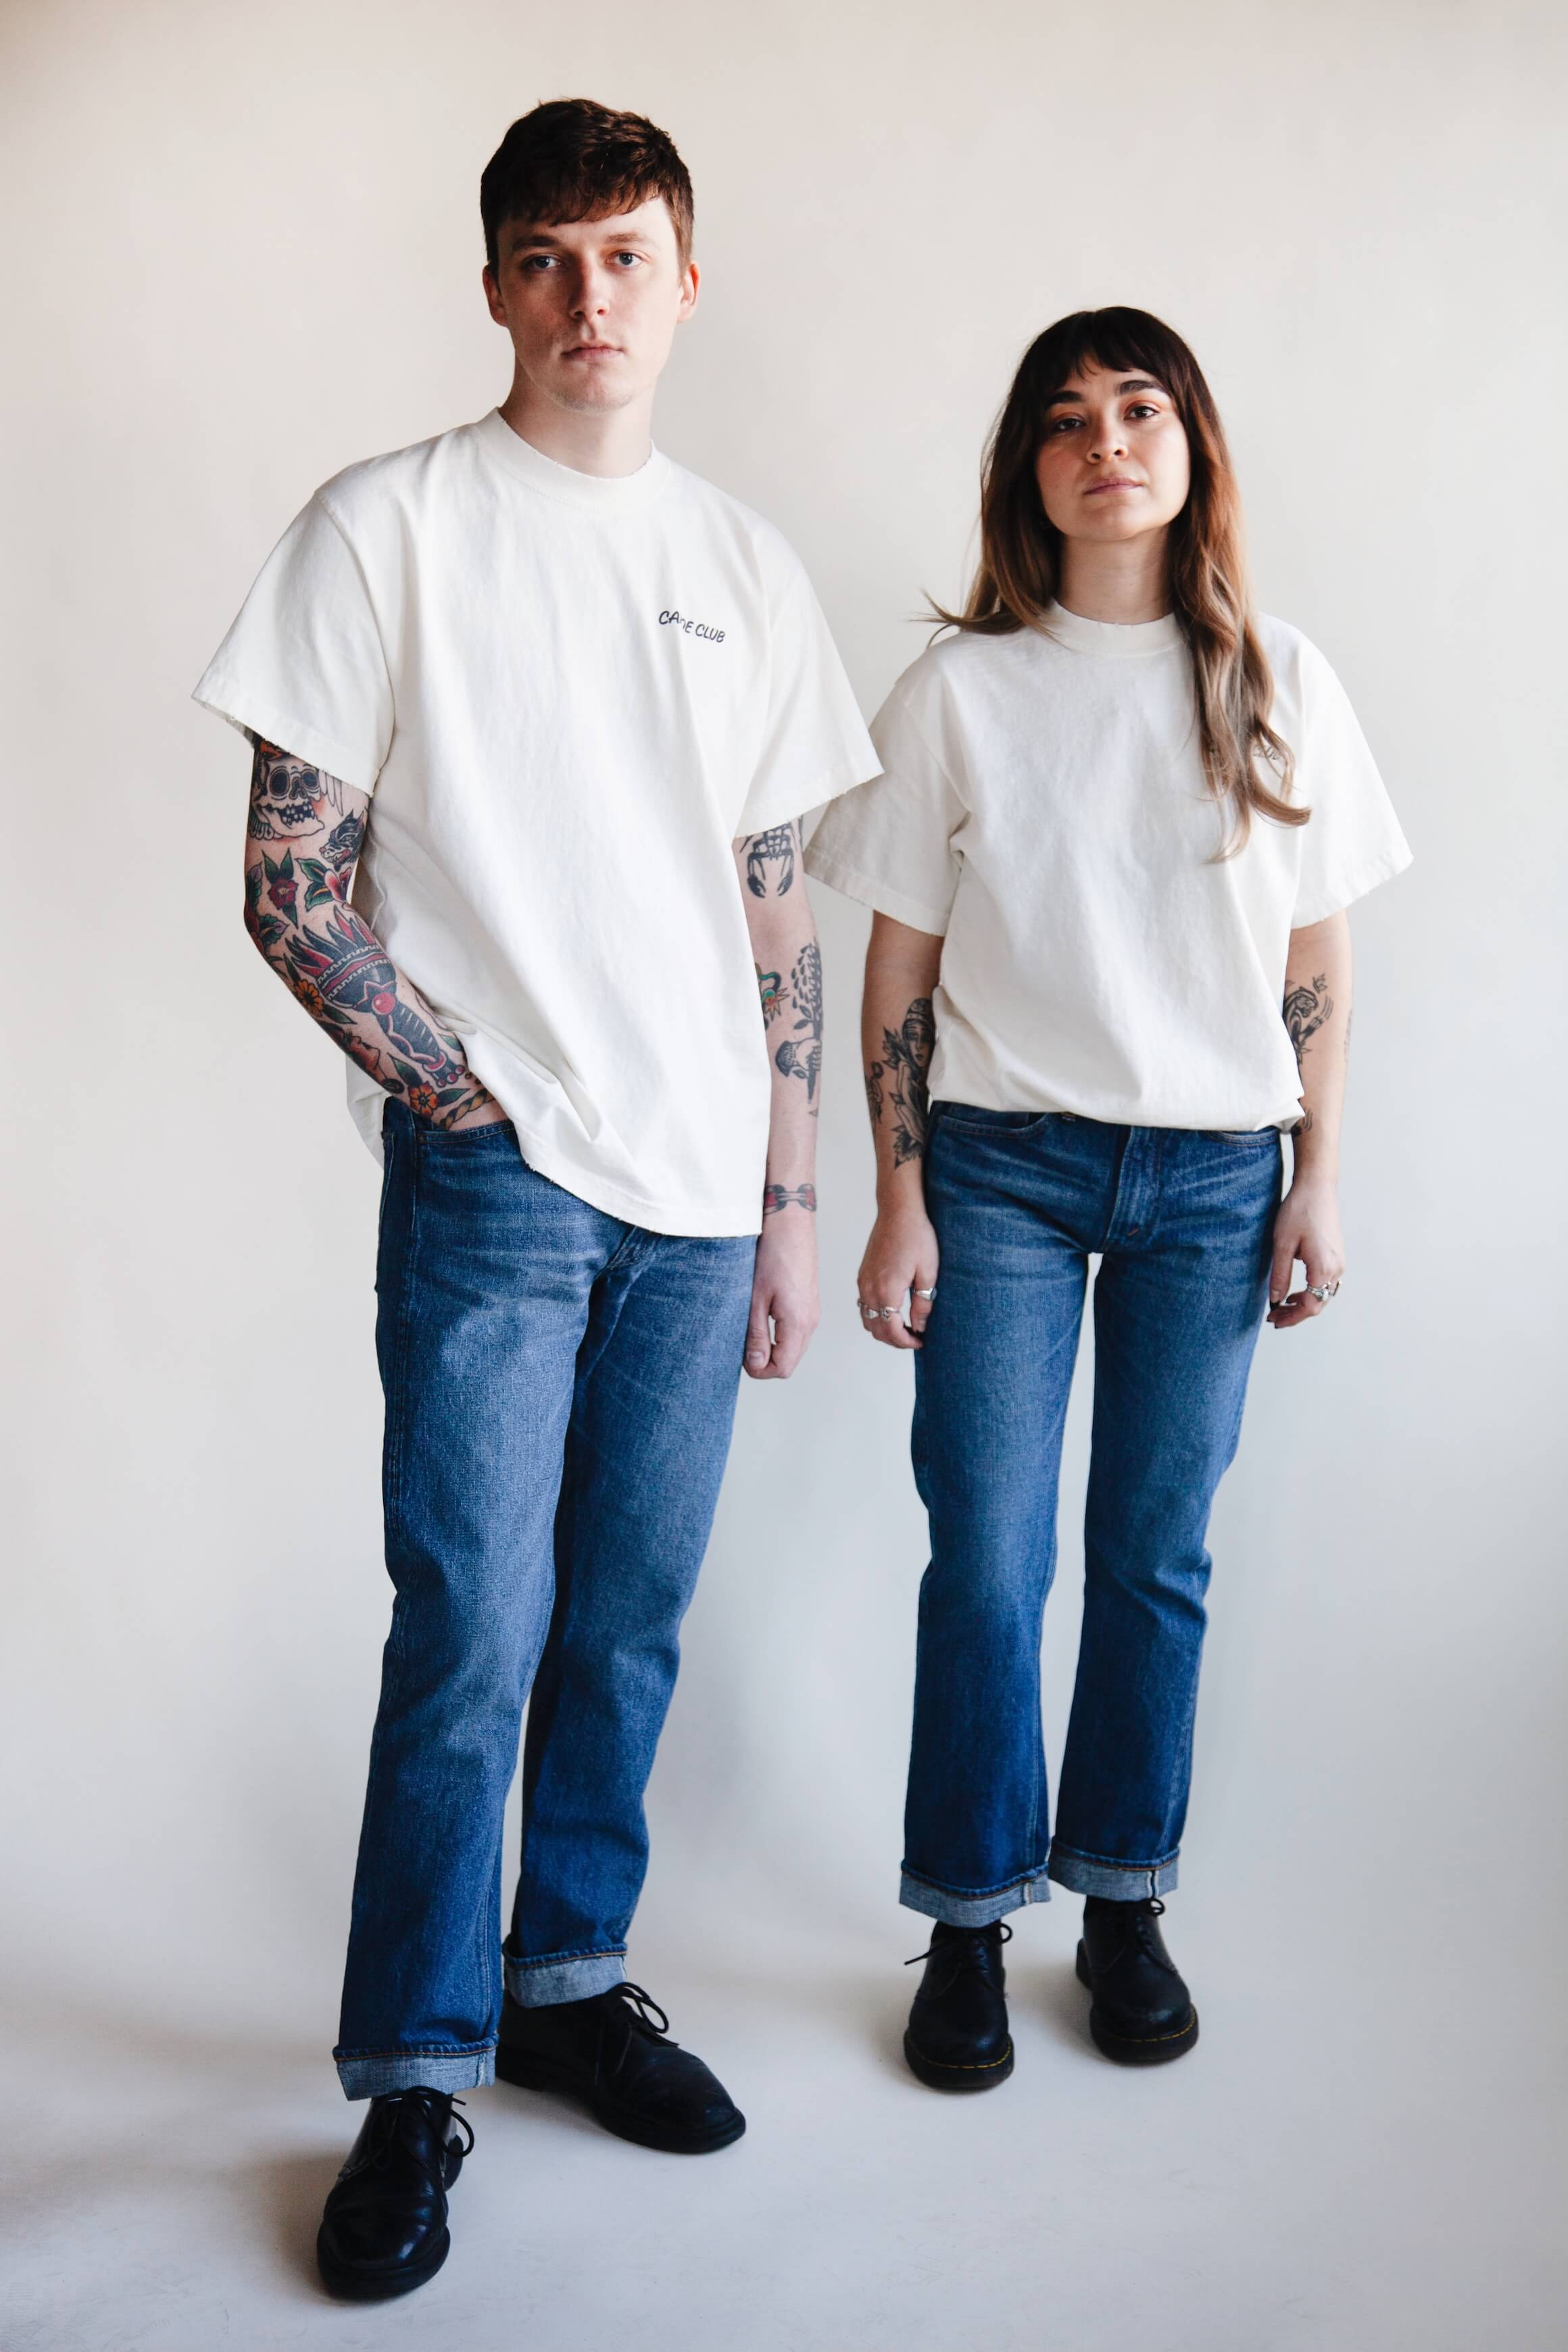 orslow 107 Ivy Denim - 2 year Wash on male and female models